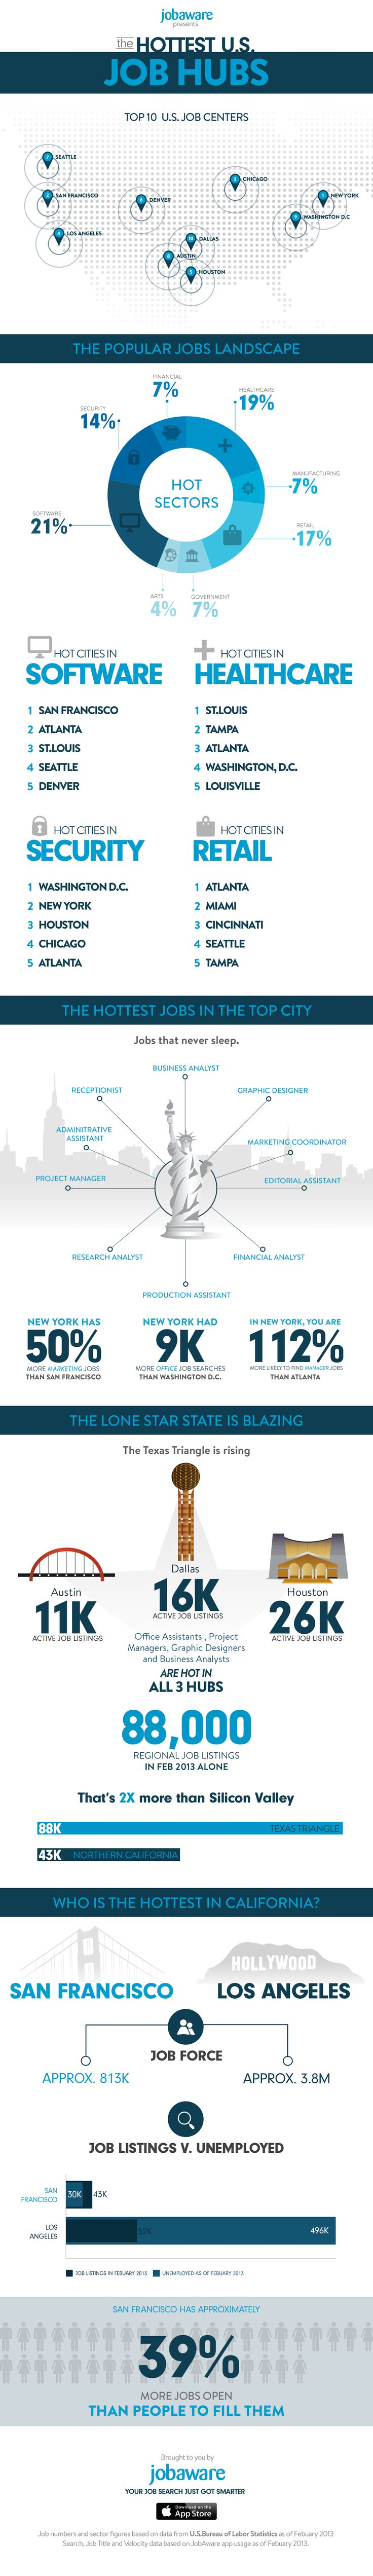 best images about job search stats interview an infographic about the hottest job sectors in the us the attached infographic is based upon data from the us bureau of labor statistics and jobaware s